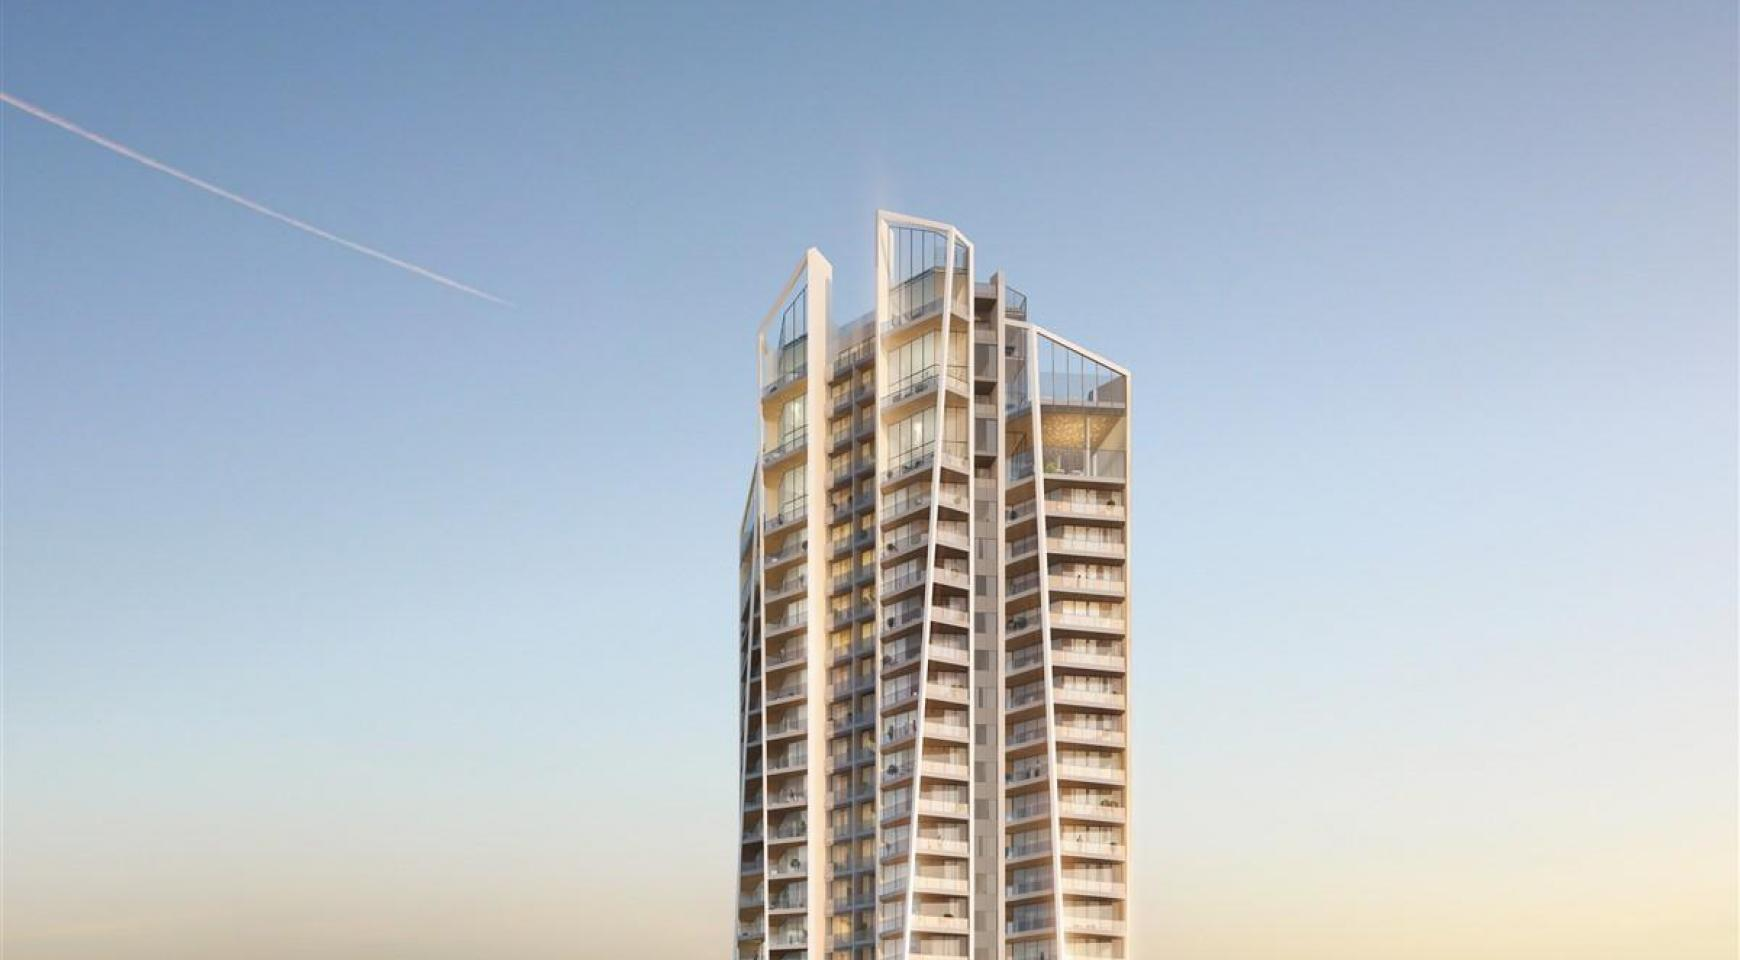 Sky Tower. New Spacious 2 Bedroom Apartment in a Luxury Complex - 3